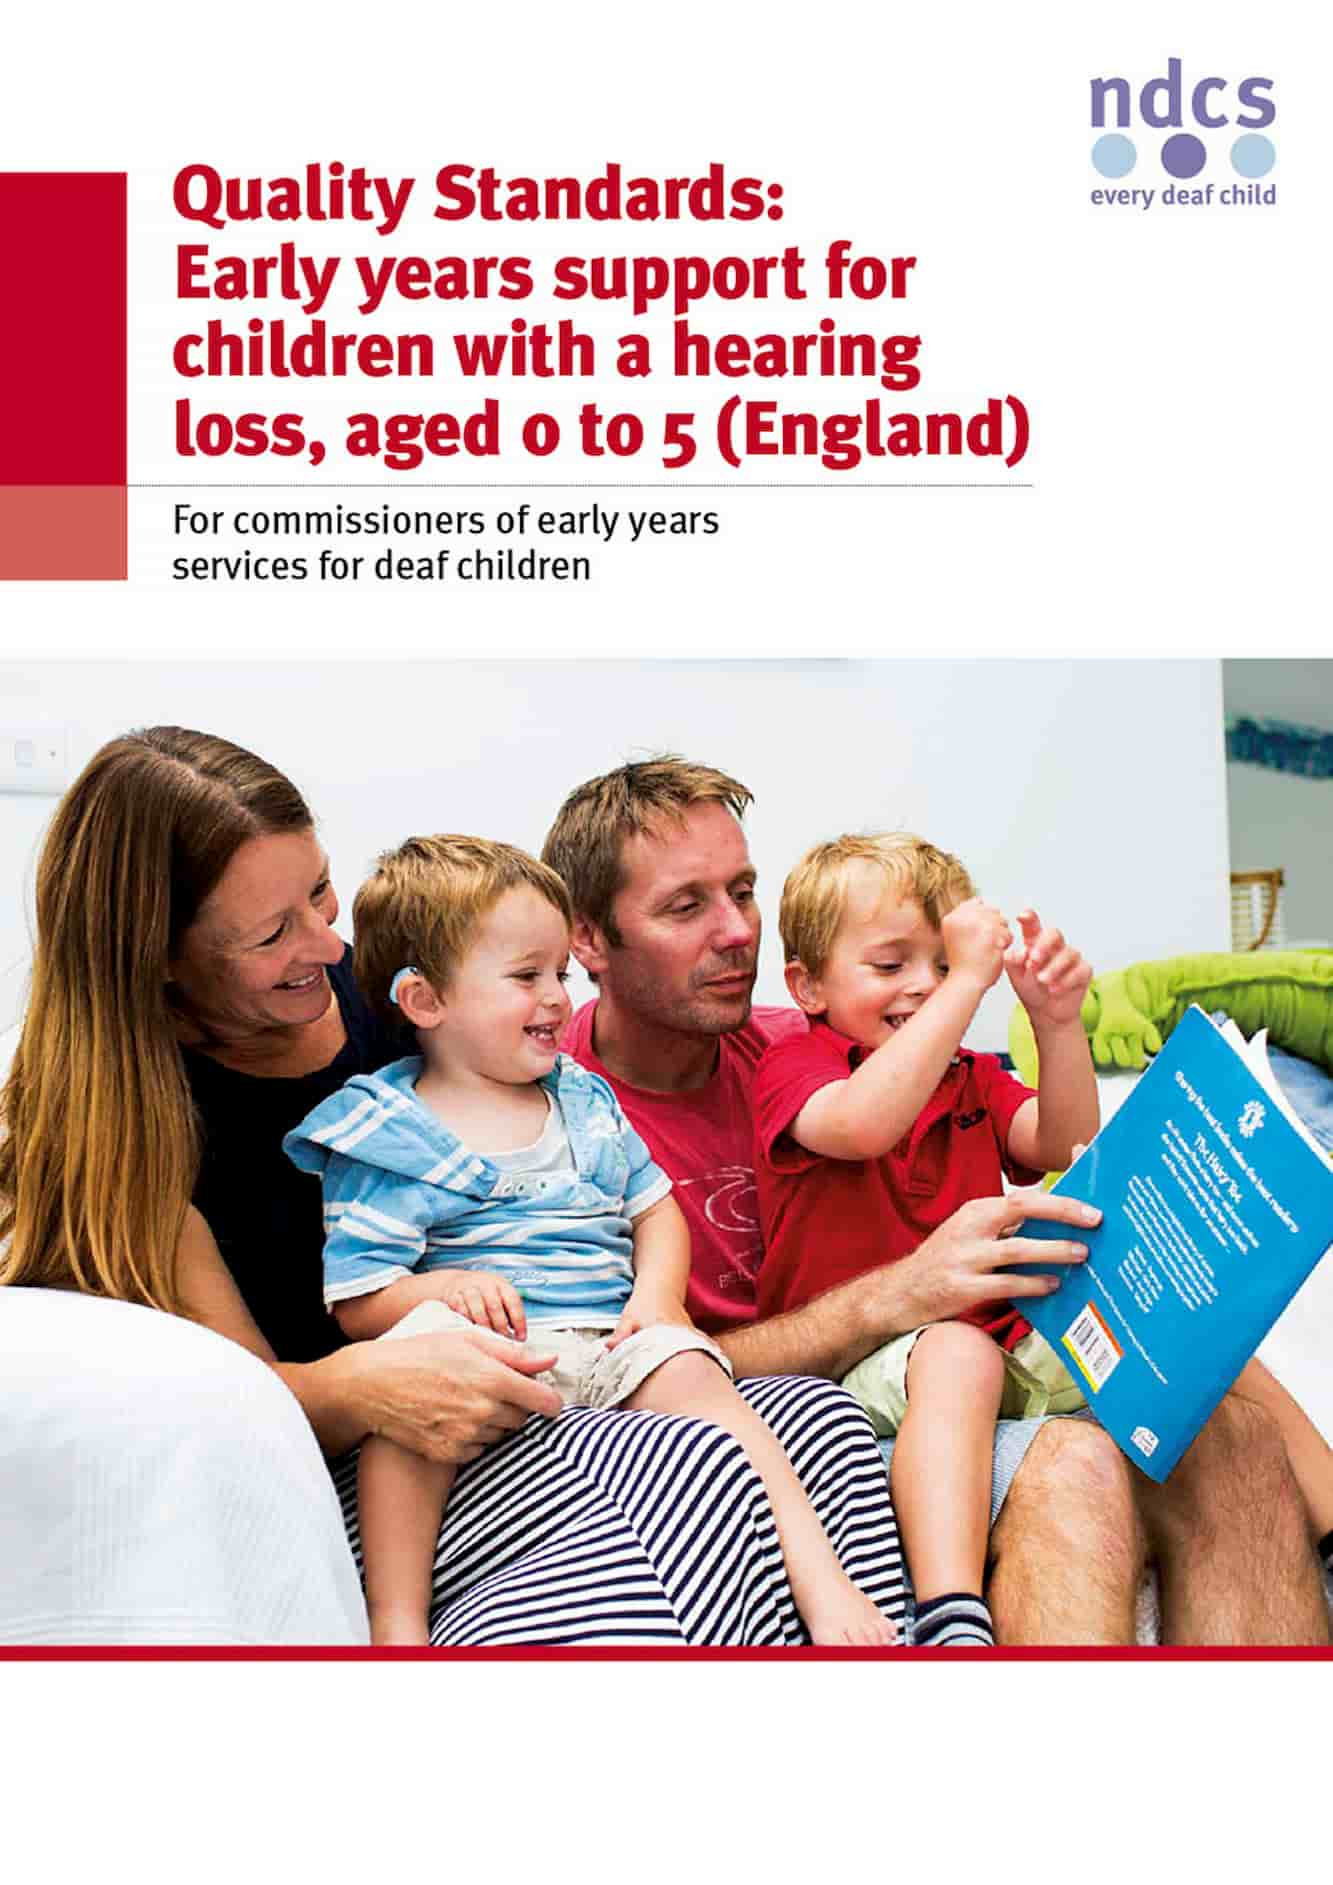 Quality Standards: Early years support for children with a hearing loss 0 to 5 (England)